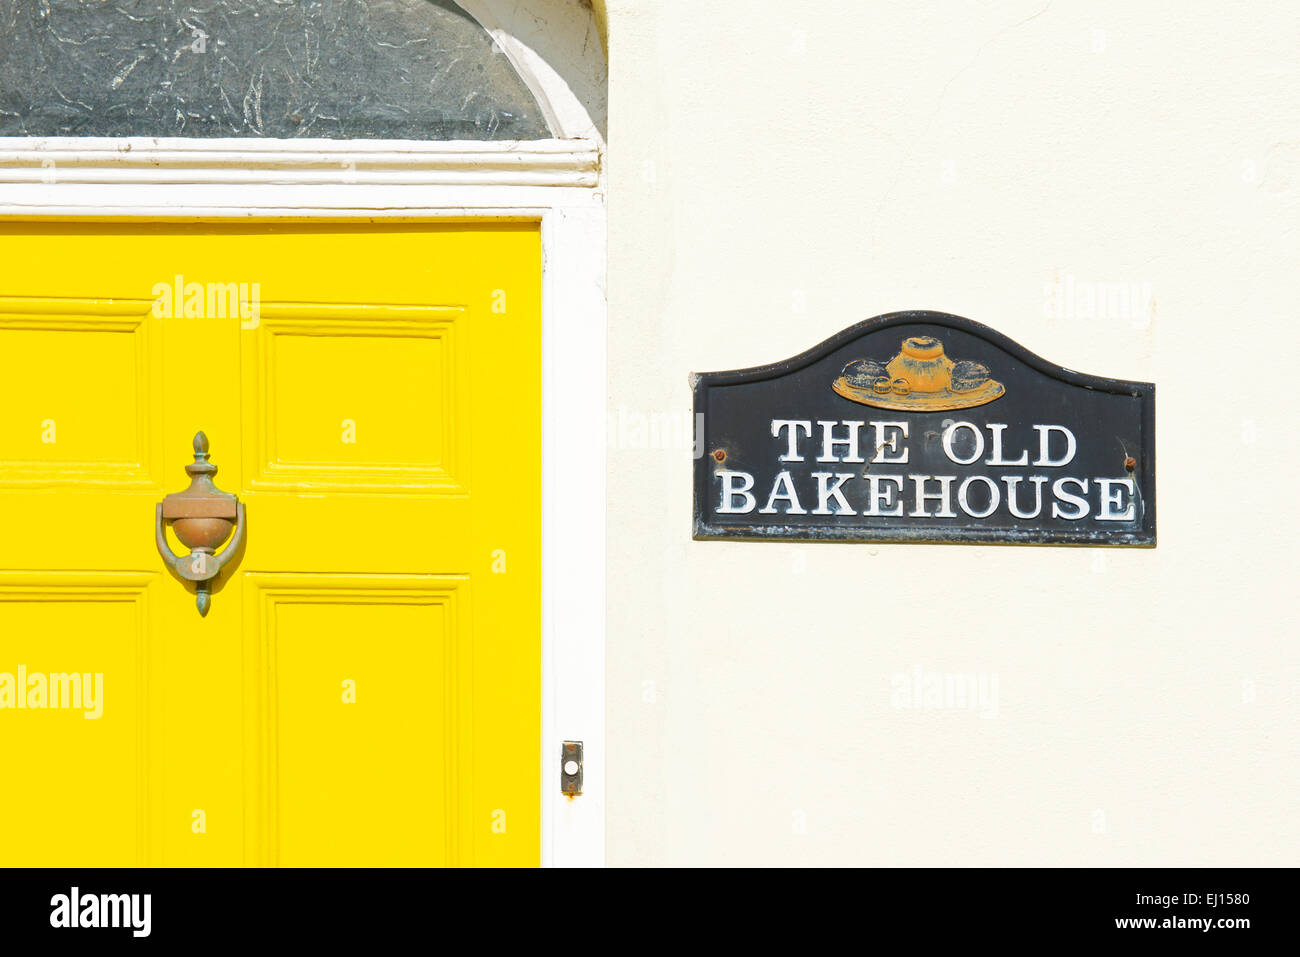 House with name plaque - the old bakehouse - Appledore, Devon. England UK - Stock Image